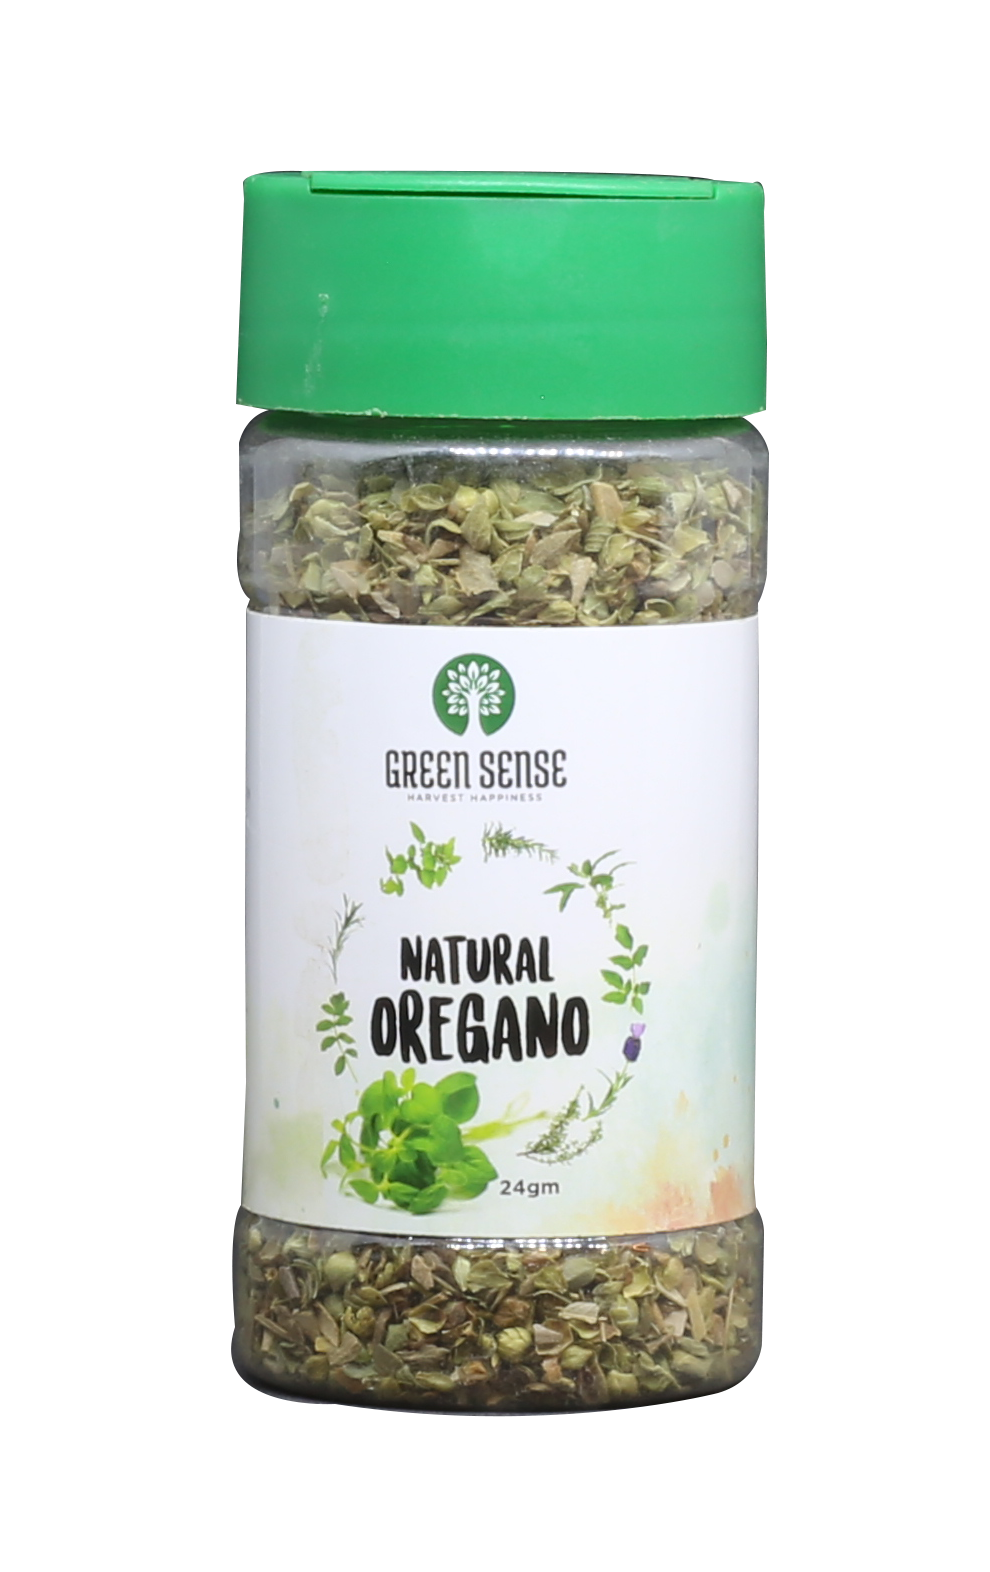 Natural Oregano - 24 gm